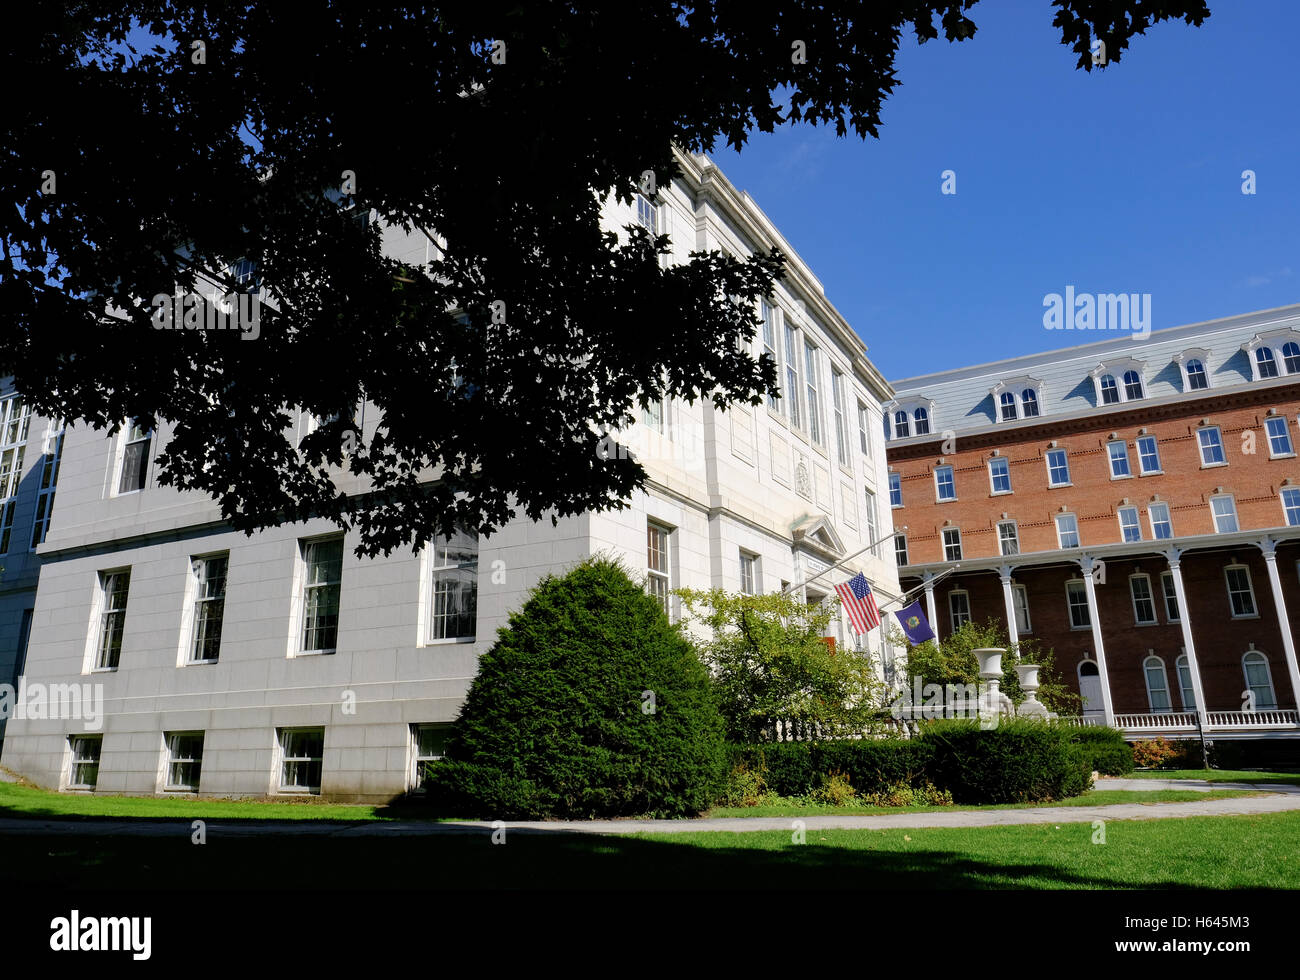 Classically designed US courthouse and justice department showing a half-mast US flag at the entrance. - Stock Image